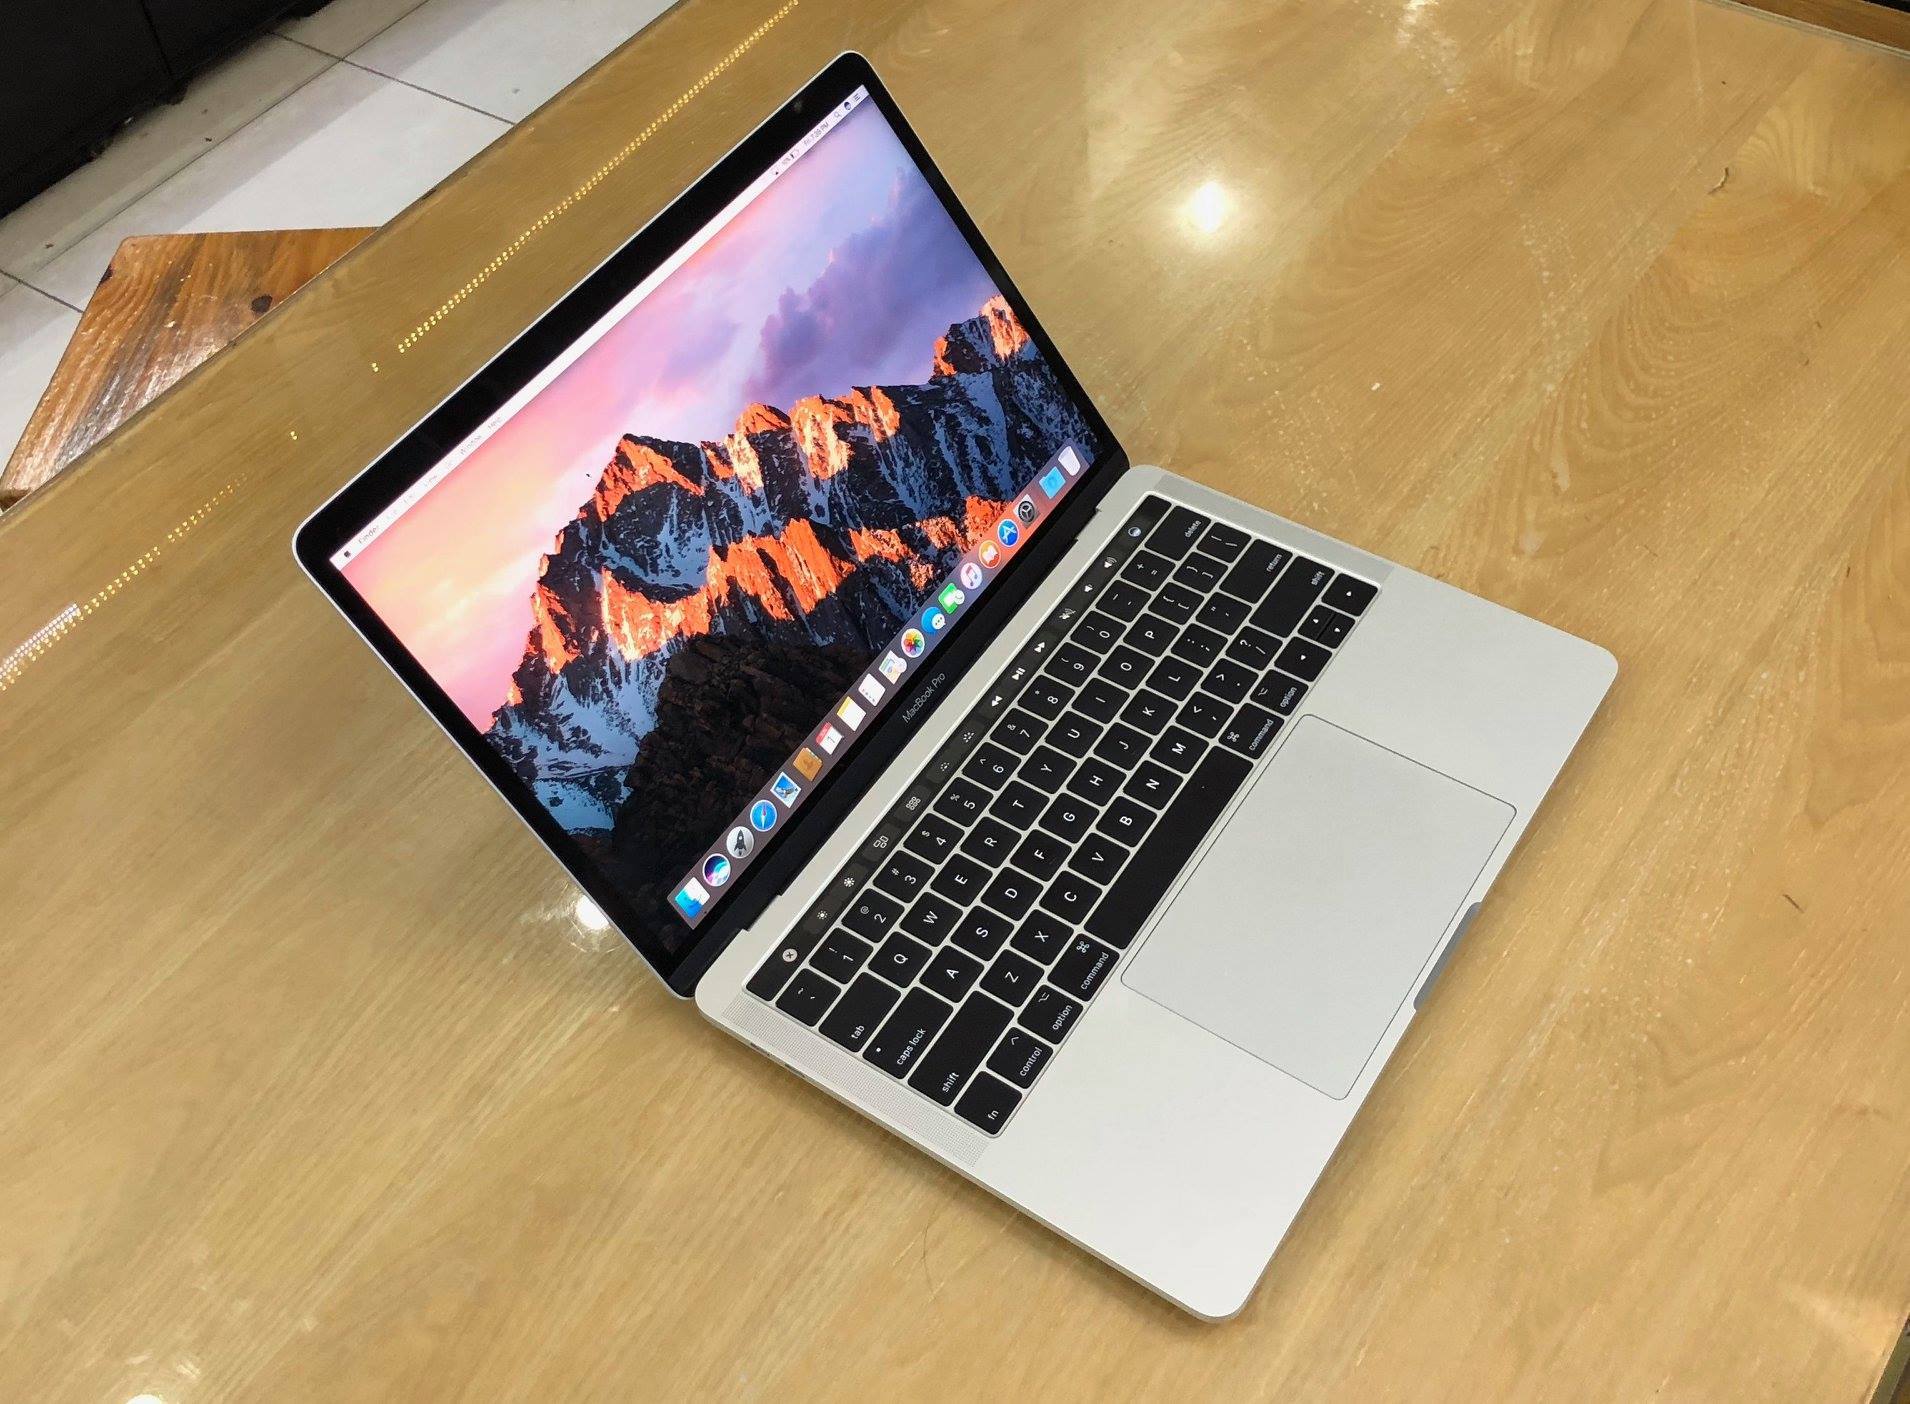 Macbook Pro Retina MLVP2 13inch 256GB Touch Bar.jpg